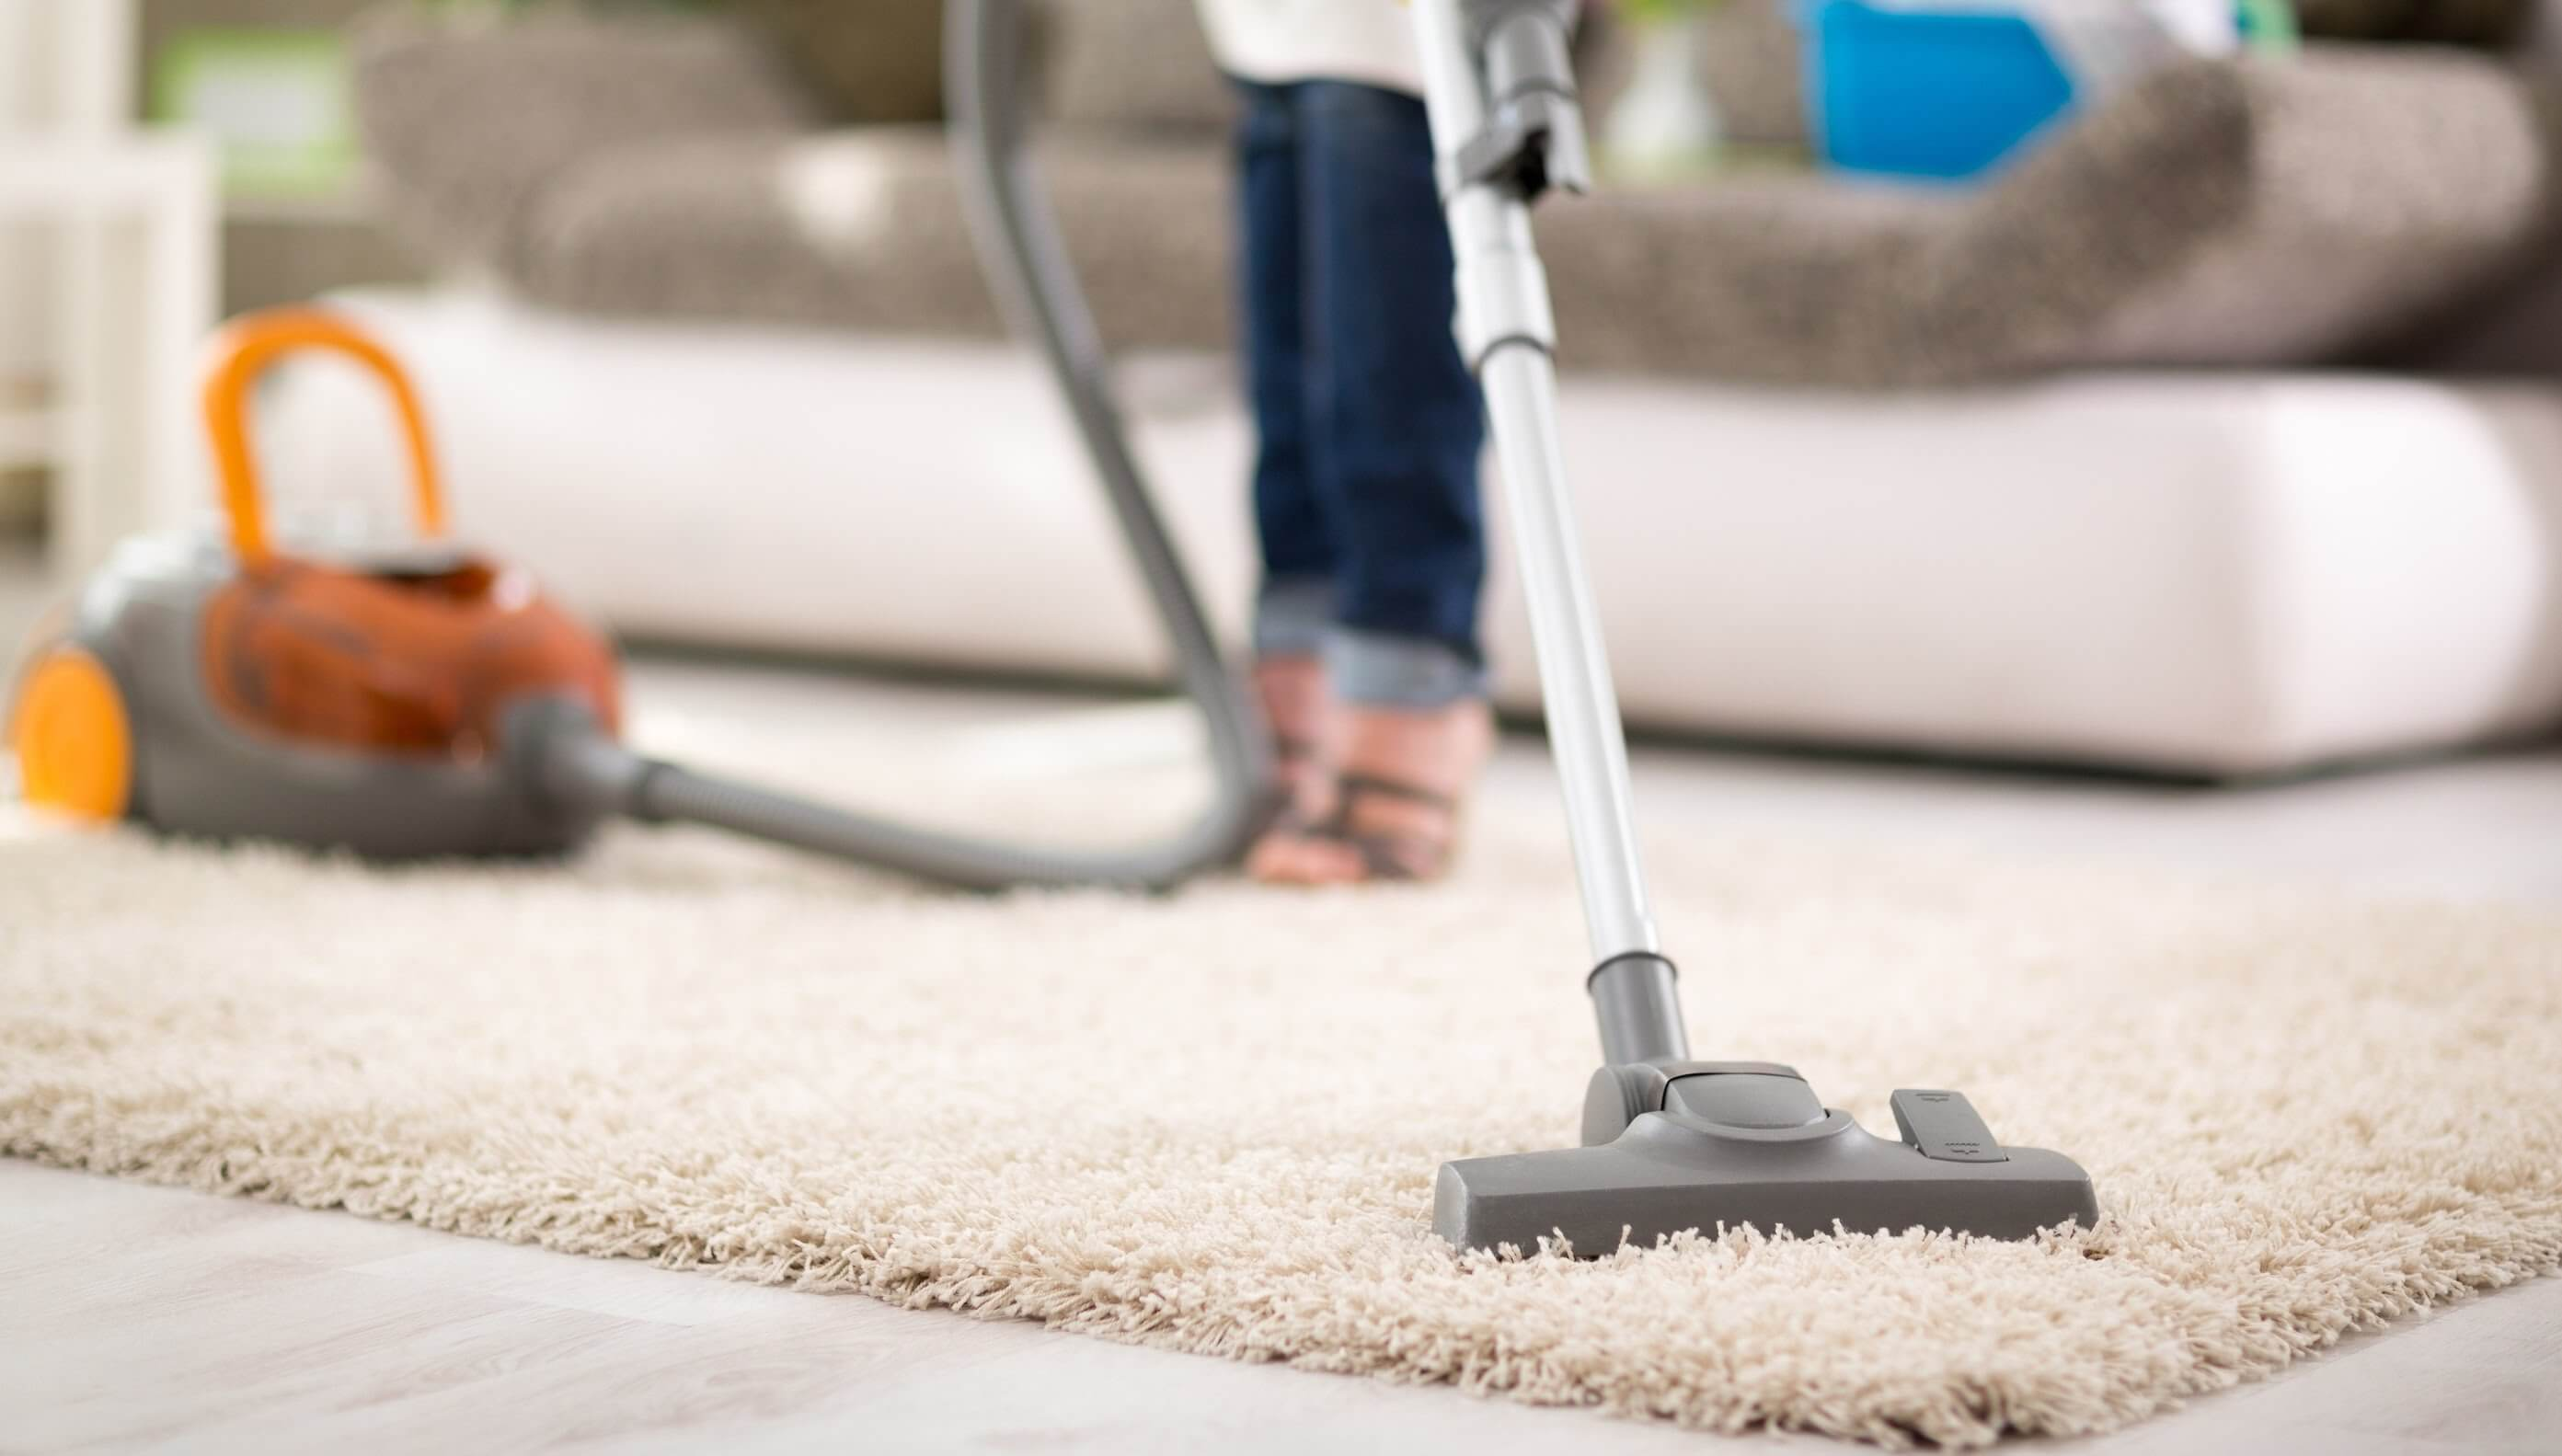 The Best Technique For Vacuuming Floors Complete Chem Dry